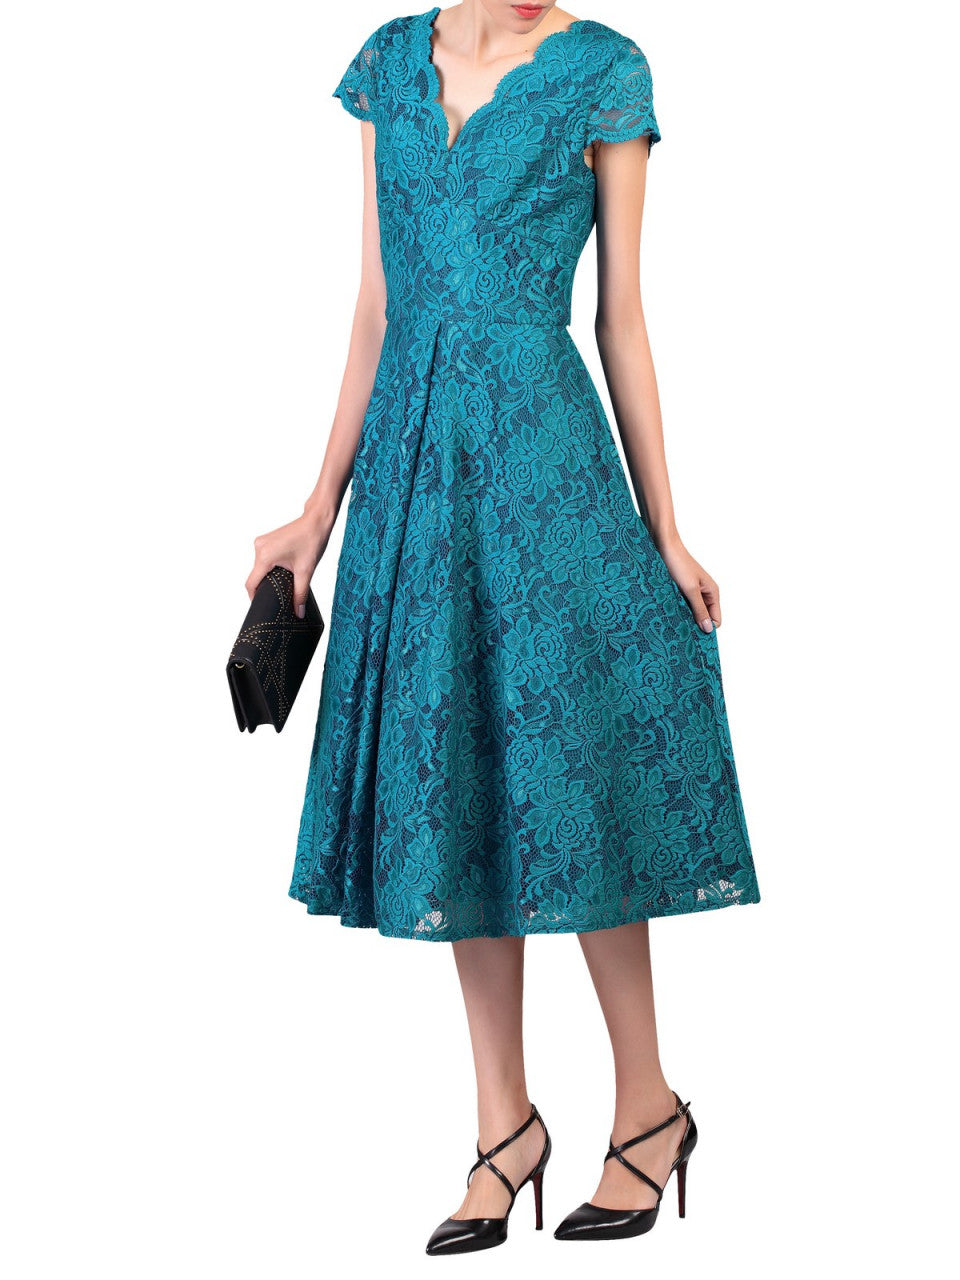 75958947c Load image into Gallery viewer, Jolie Moi Cap Sleeve Lace Midi Dress, Teal  ...